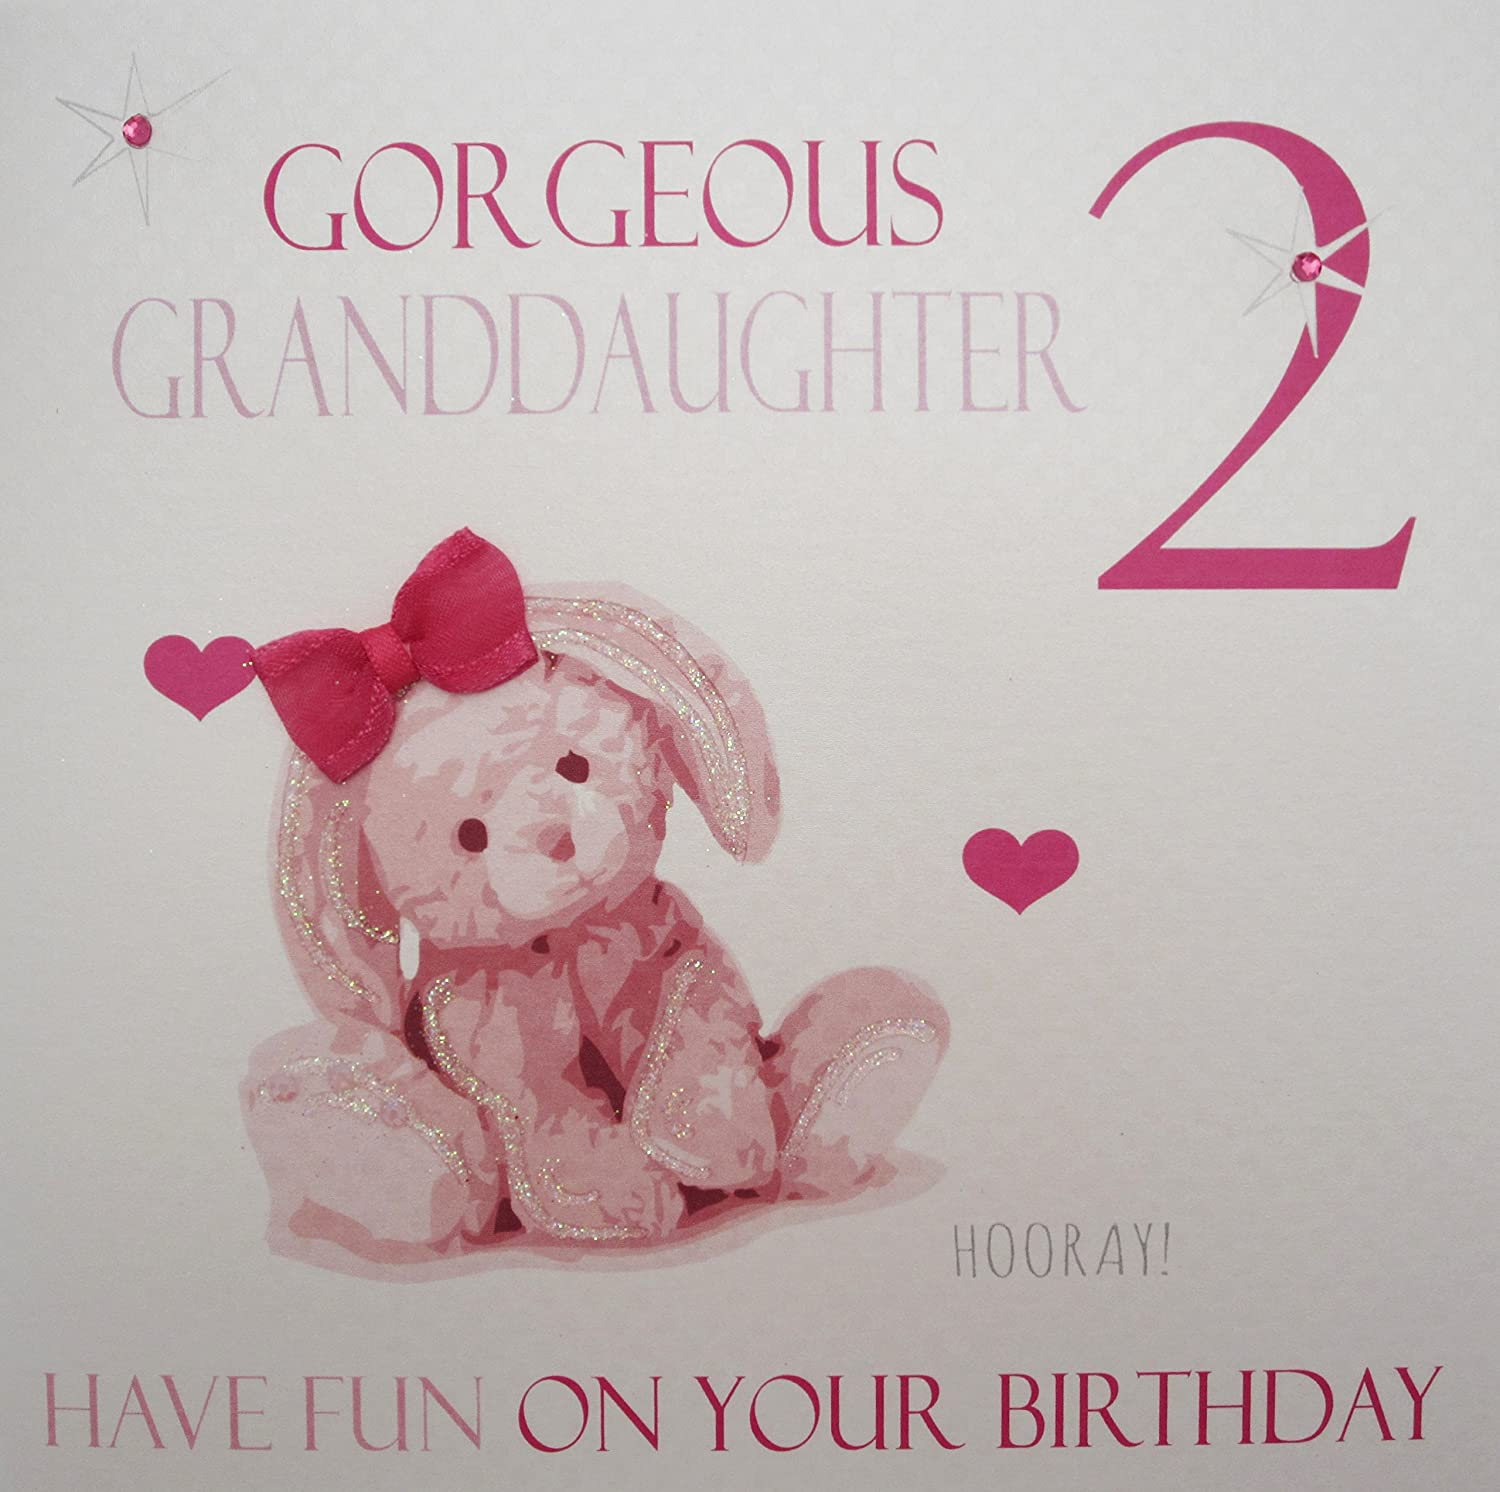 White cotton cards gorgeous granddaughter 2 pink bunny handmade age white cotton cards gorgeous granddaughter 2 pink bunny handmade age 2 birthday card amazon kitchen home bookmarktalkfo Choice Image